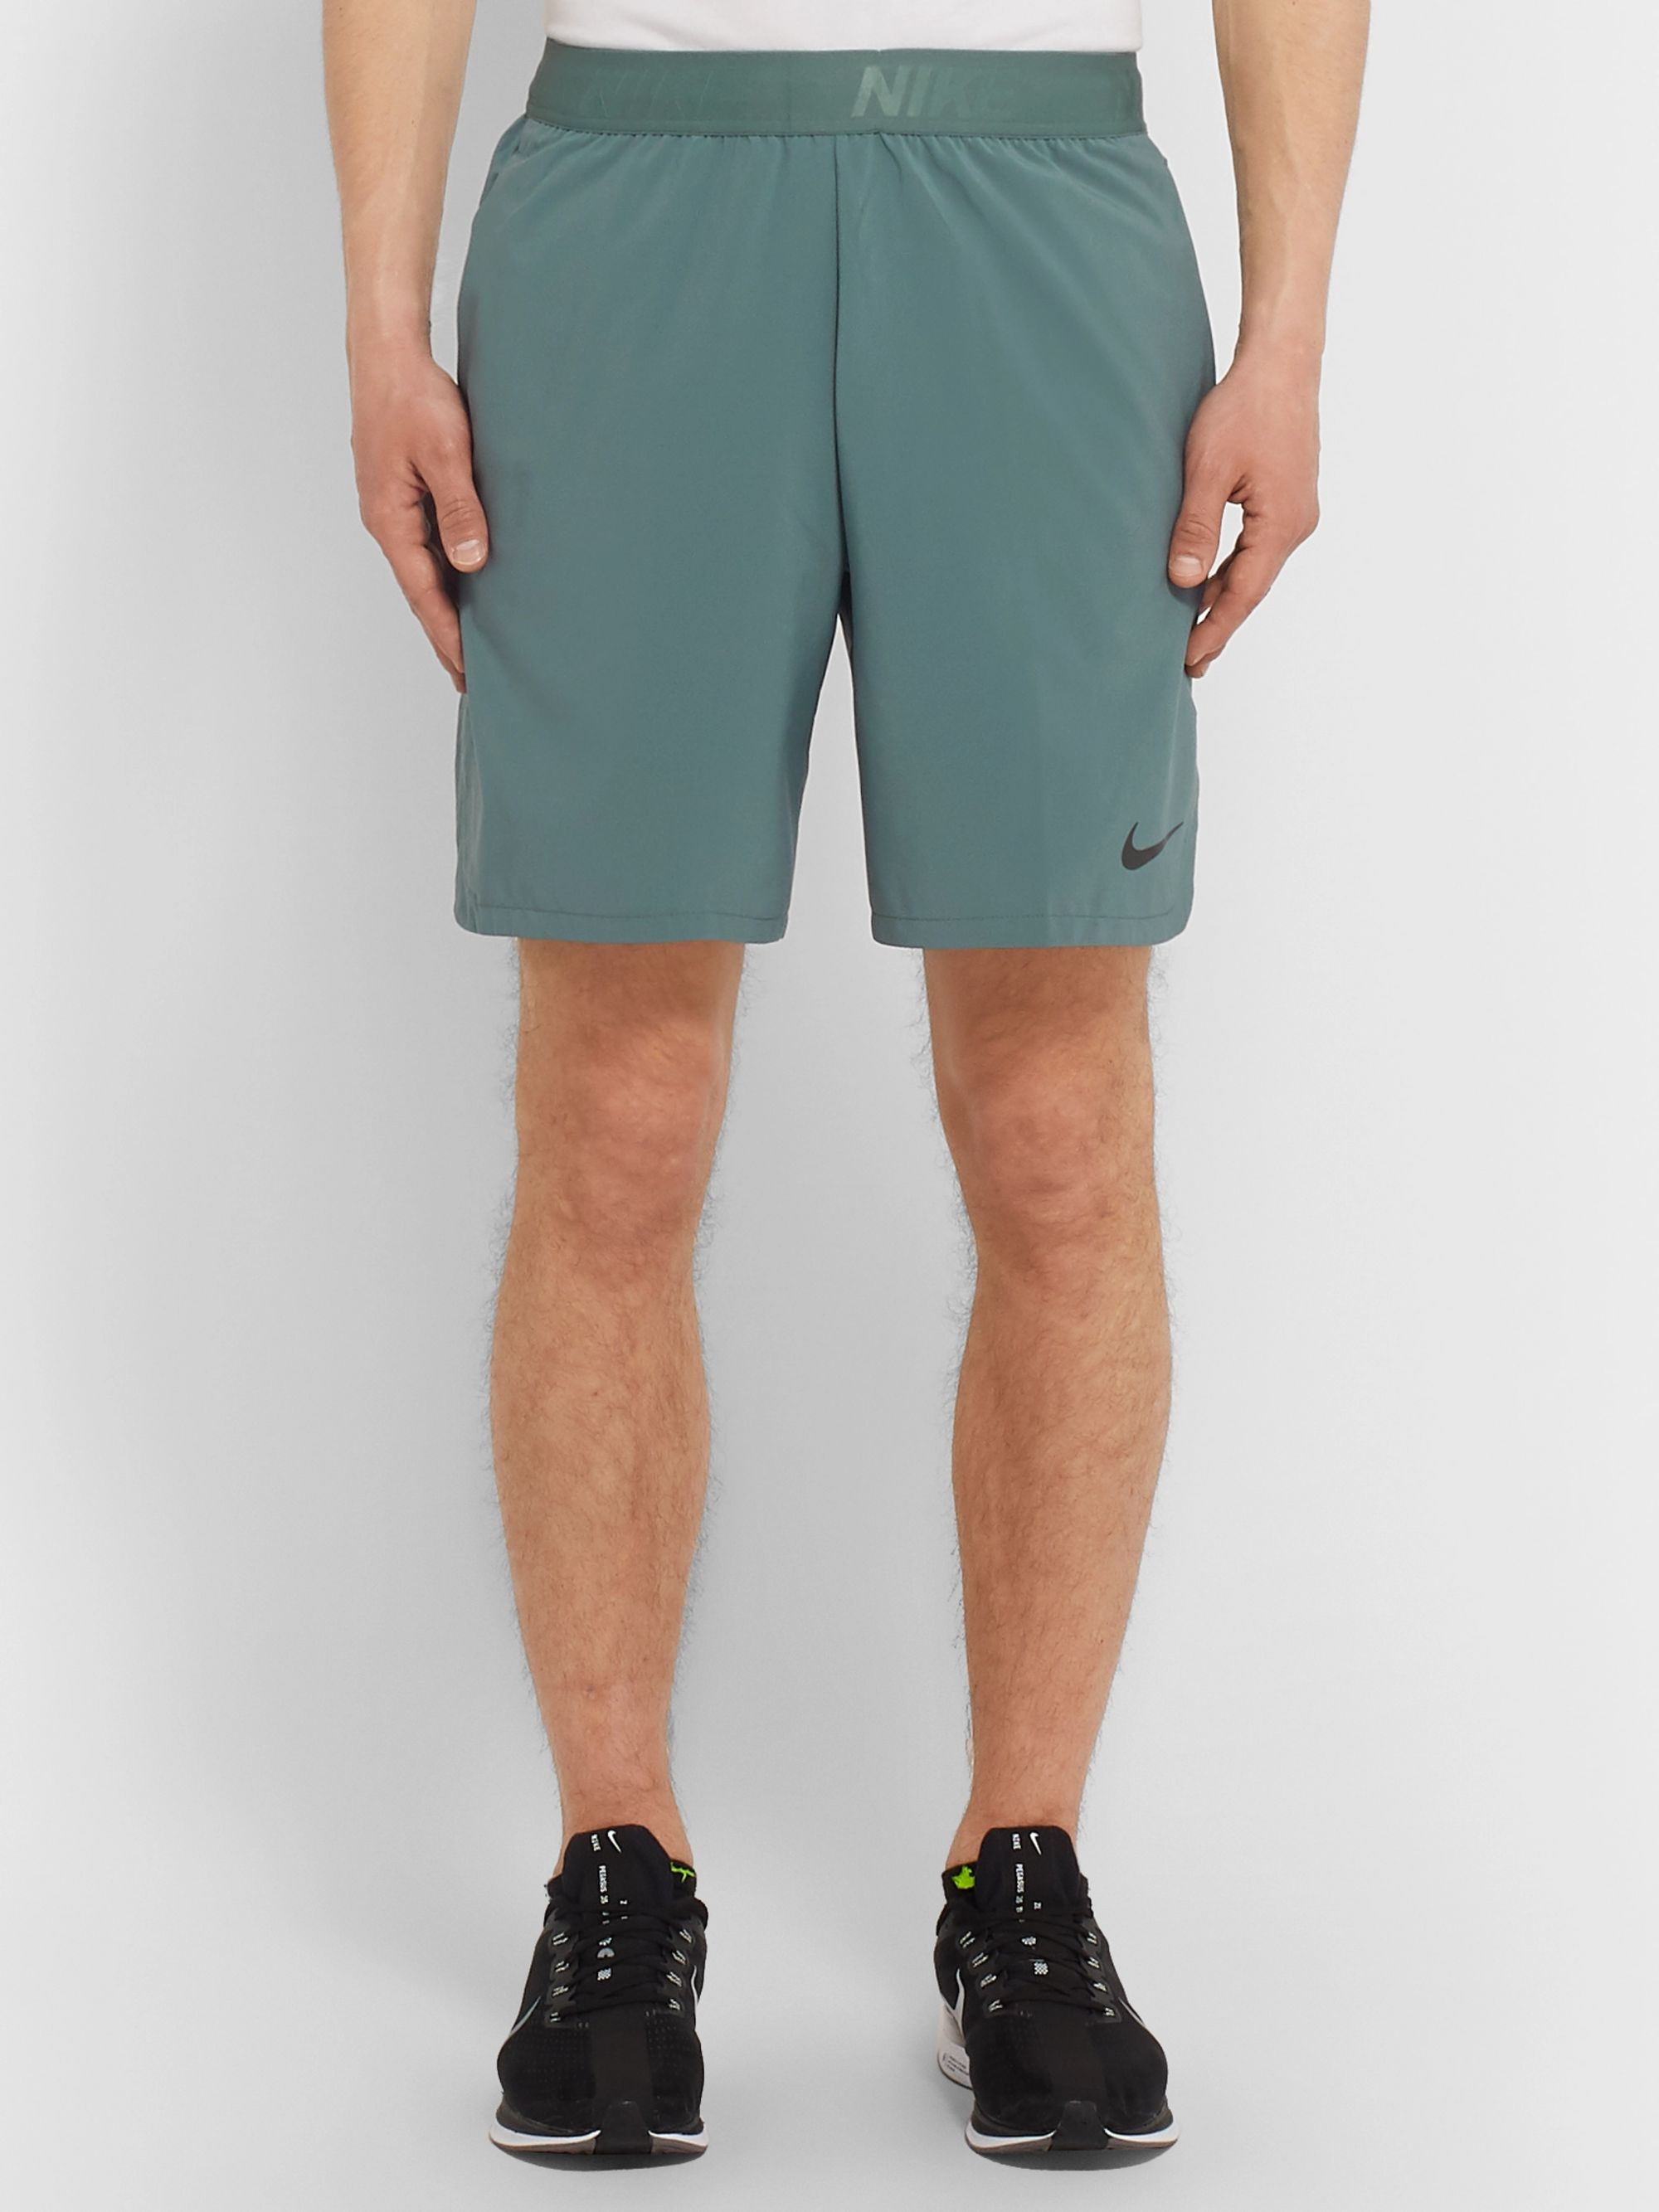 Nike Training Flex Vent Max 2.0 Stretch Shorts